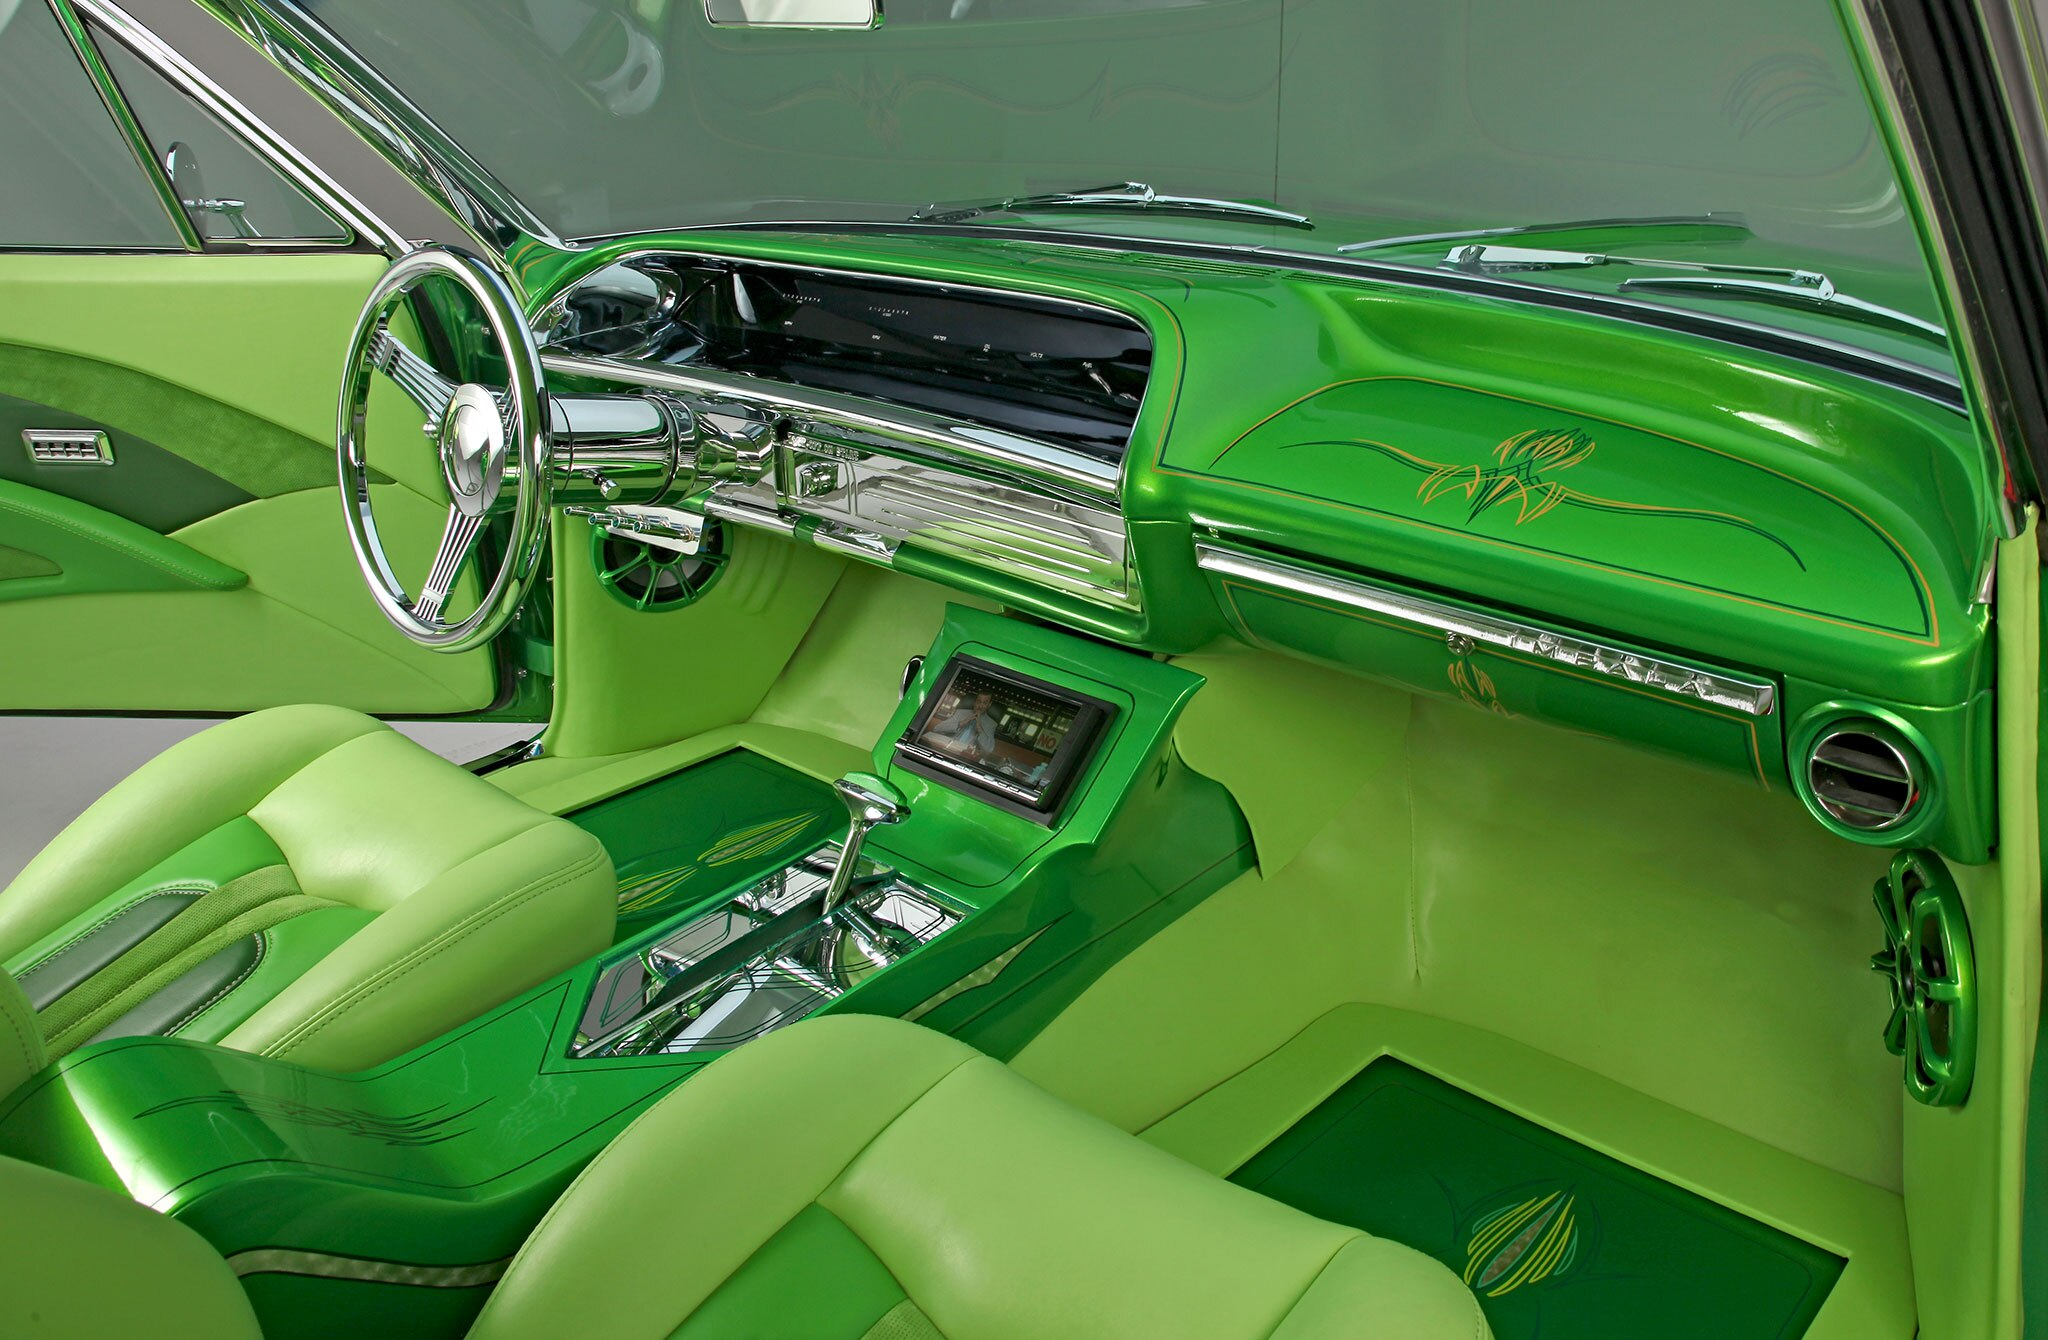 1964 Chevrolet Impala Lime Green Machine